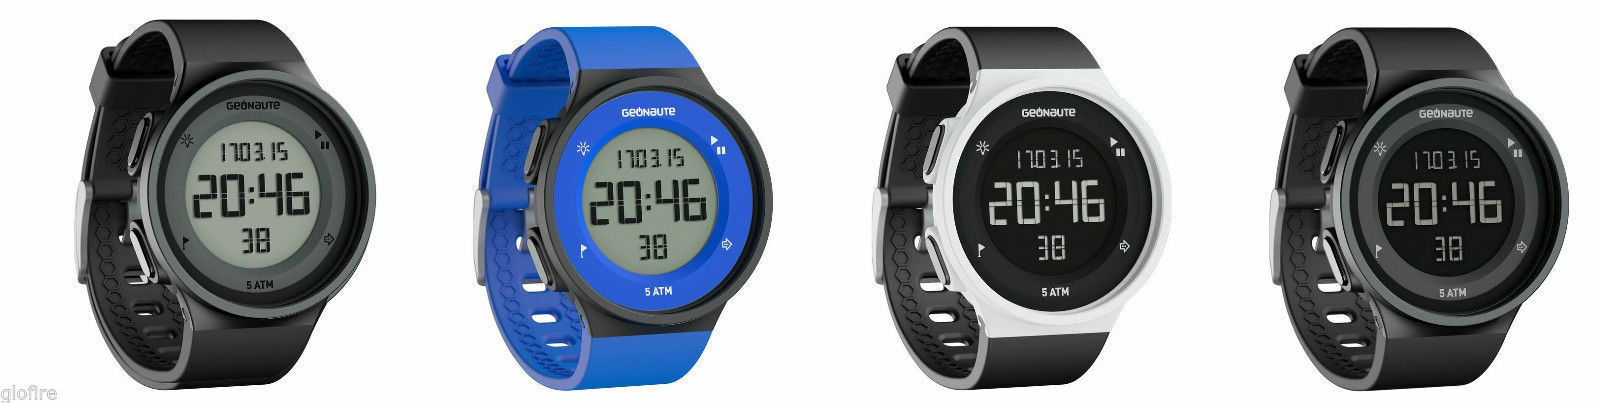 SPORTS TRAINING WATCH SWIMMING WATERPROOF LARGE DIGITS EASY REMOVABLE STRAP